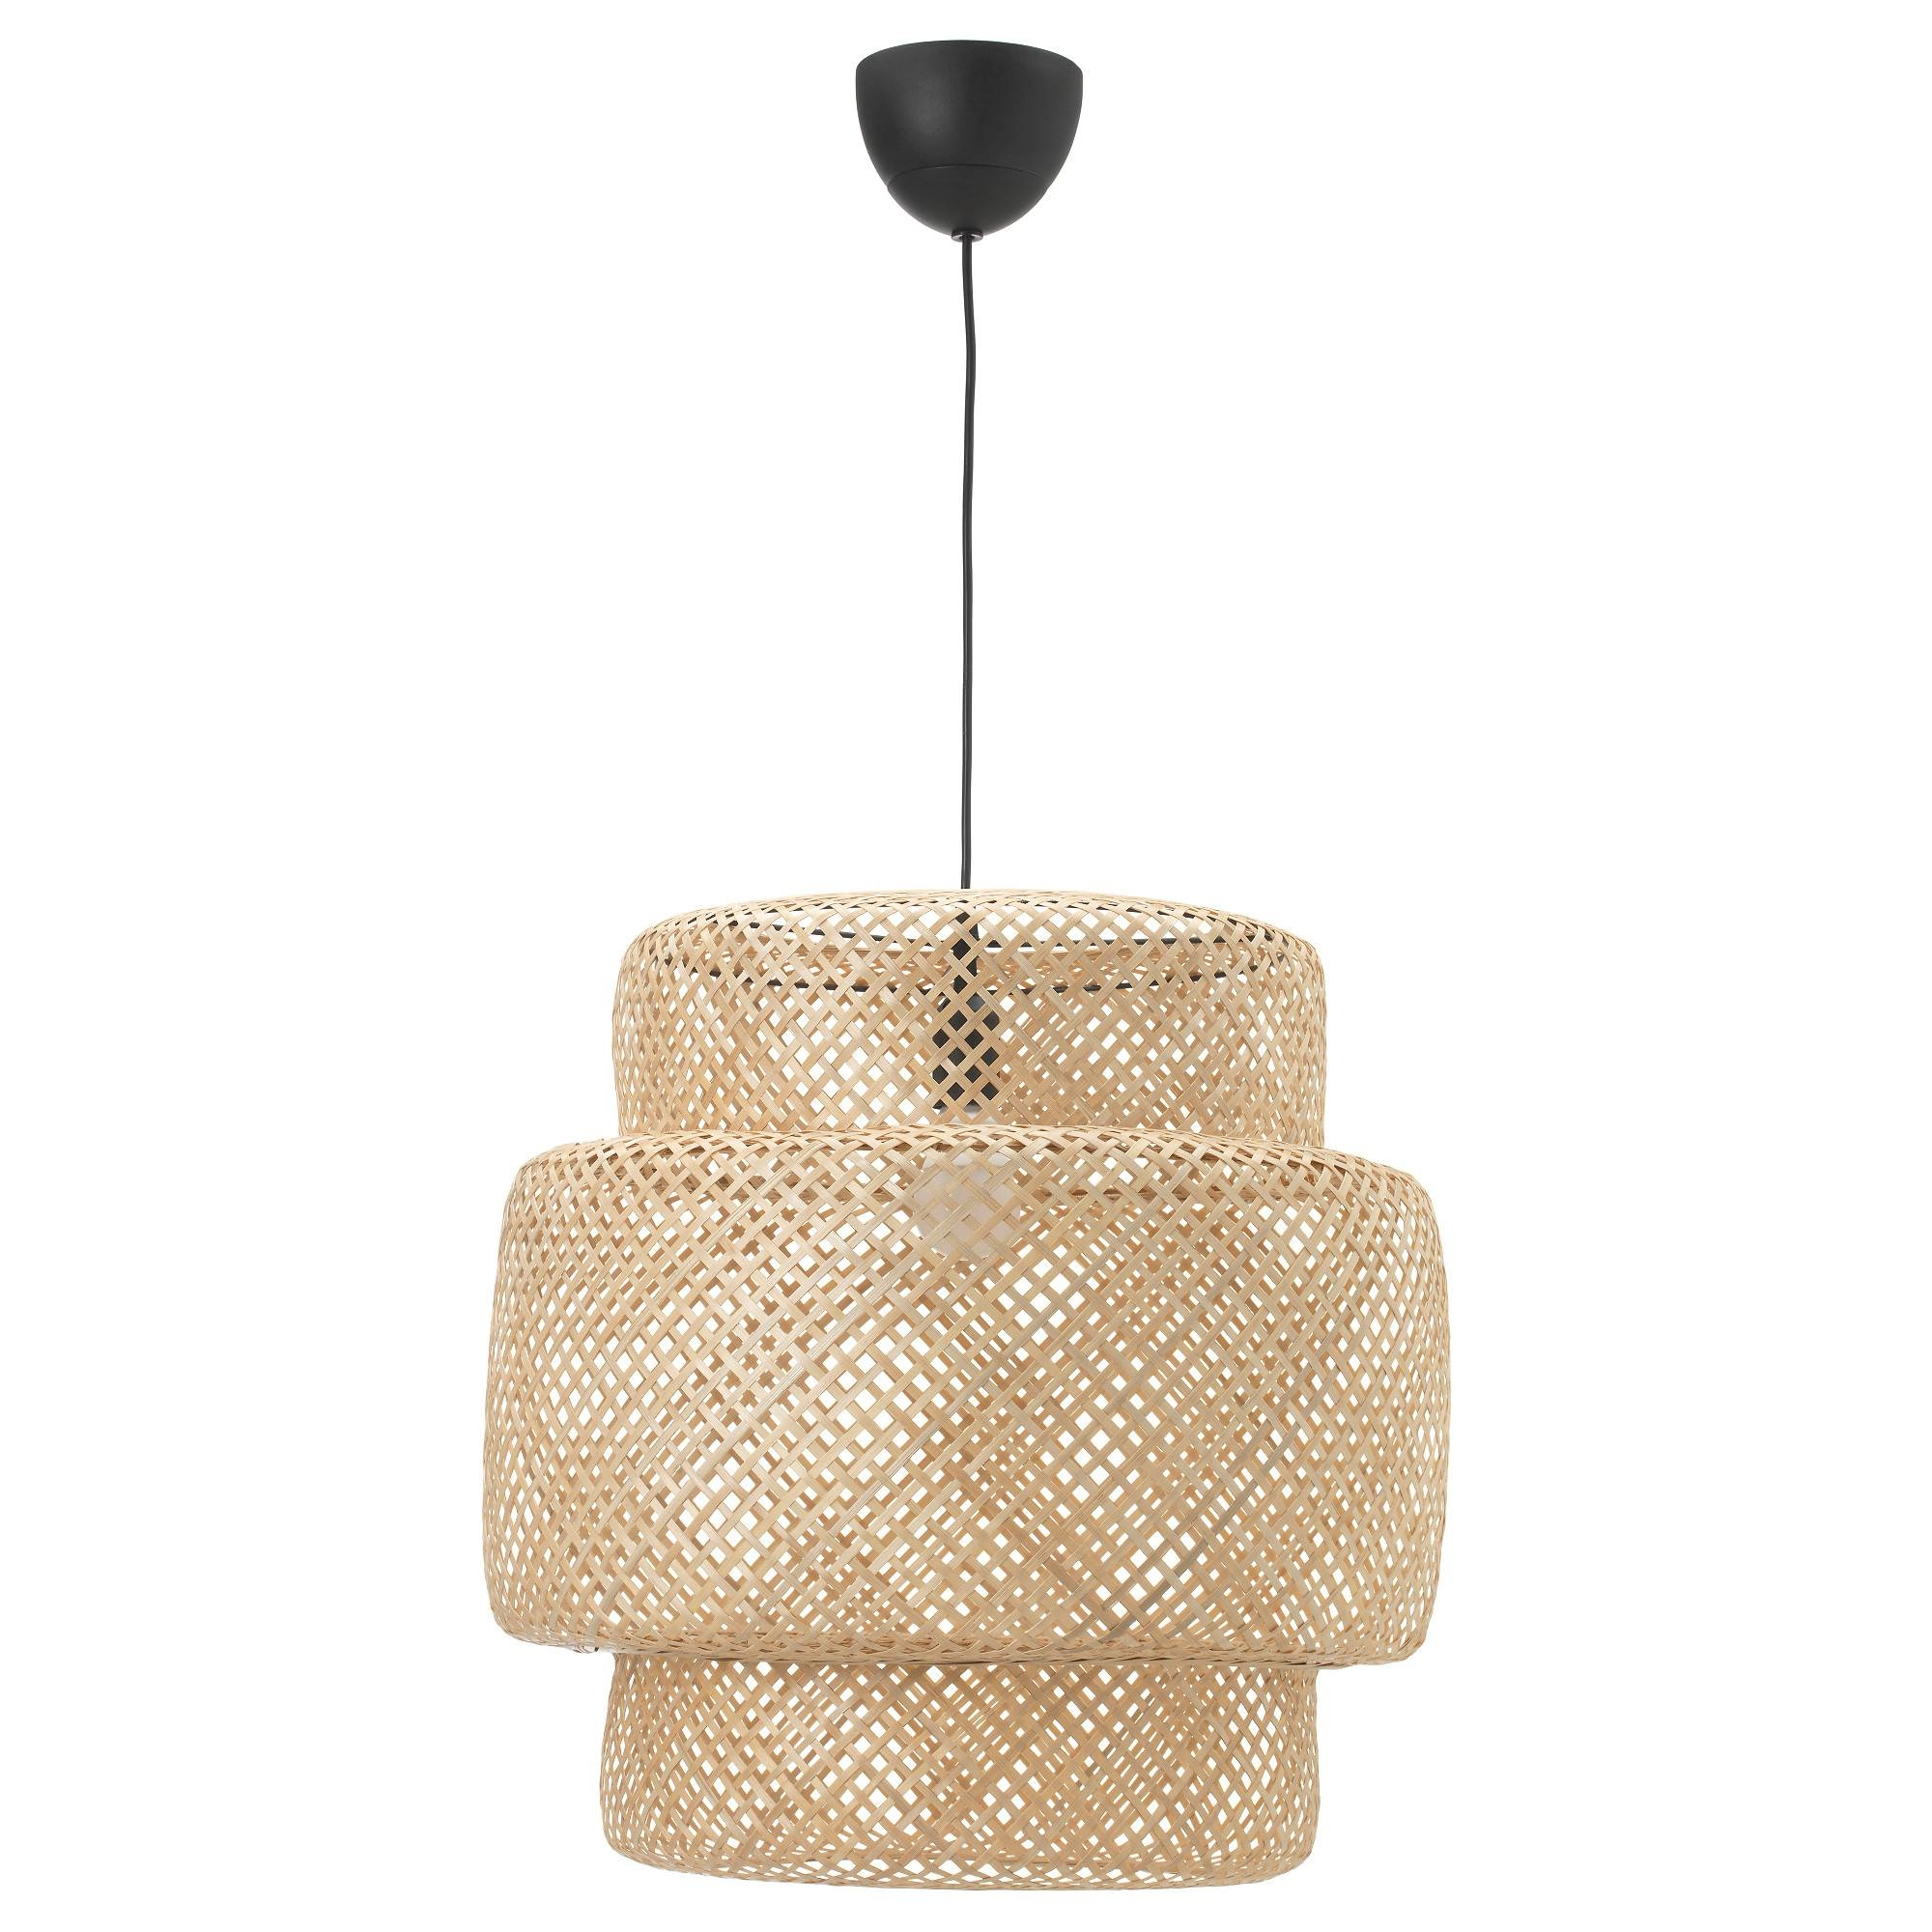 Pendant Lights & Lamp Shades - Ikea with Ikea Hanging Lights (Image 13 of 15)